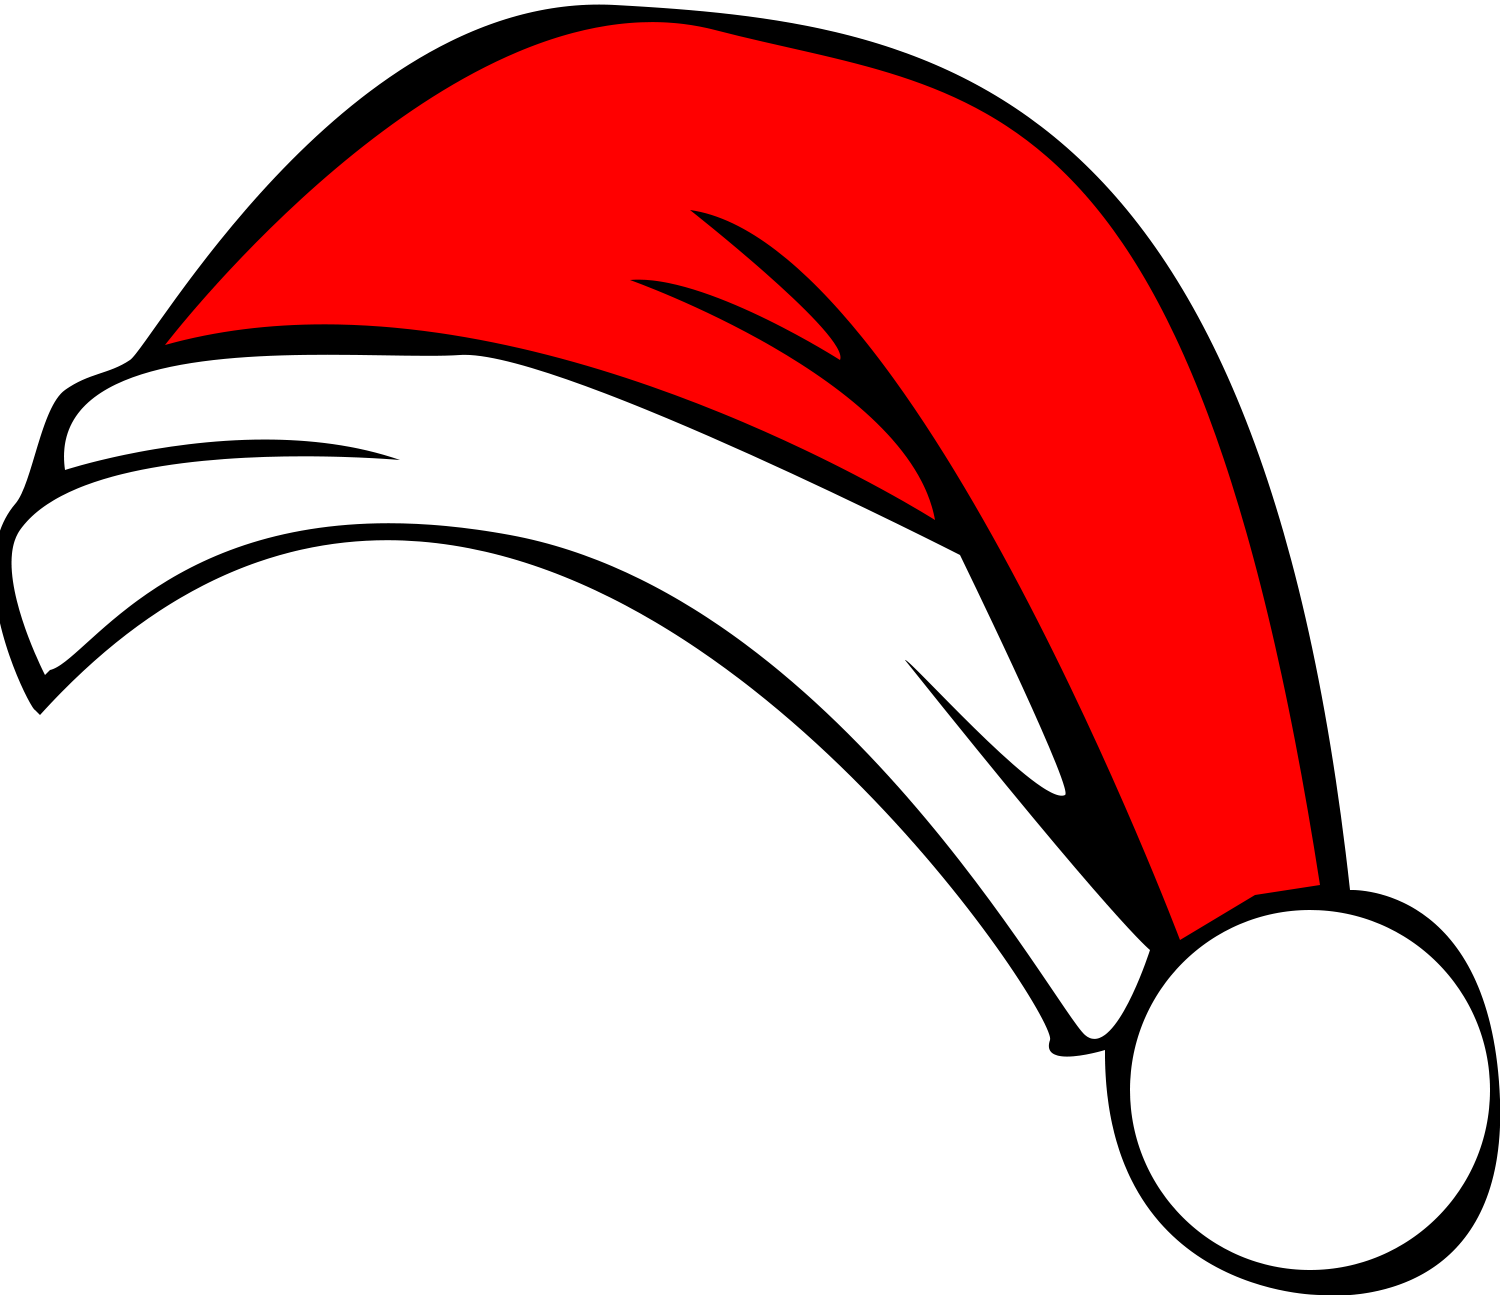 Cartoon santa hat png. Clip art